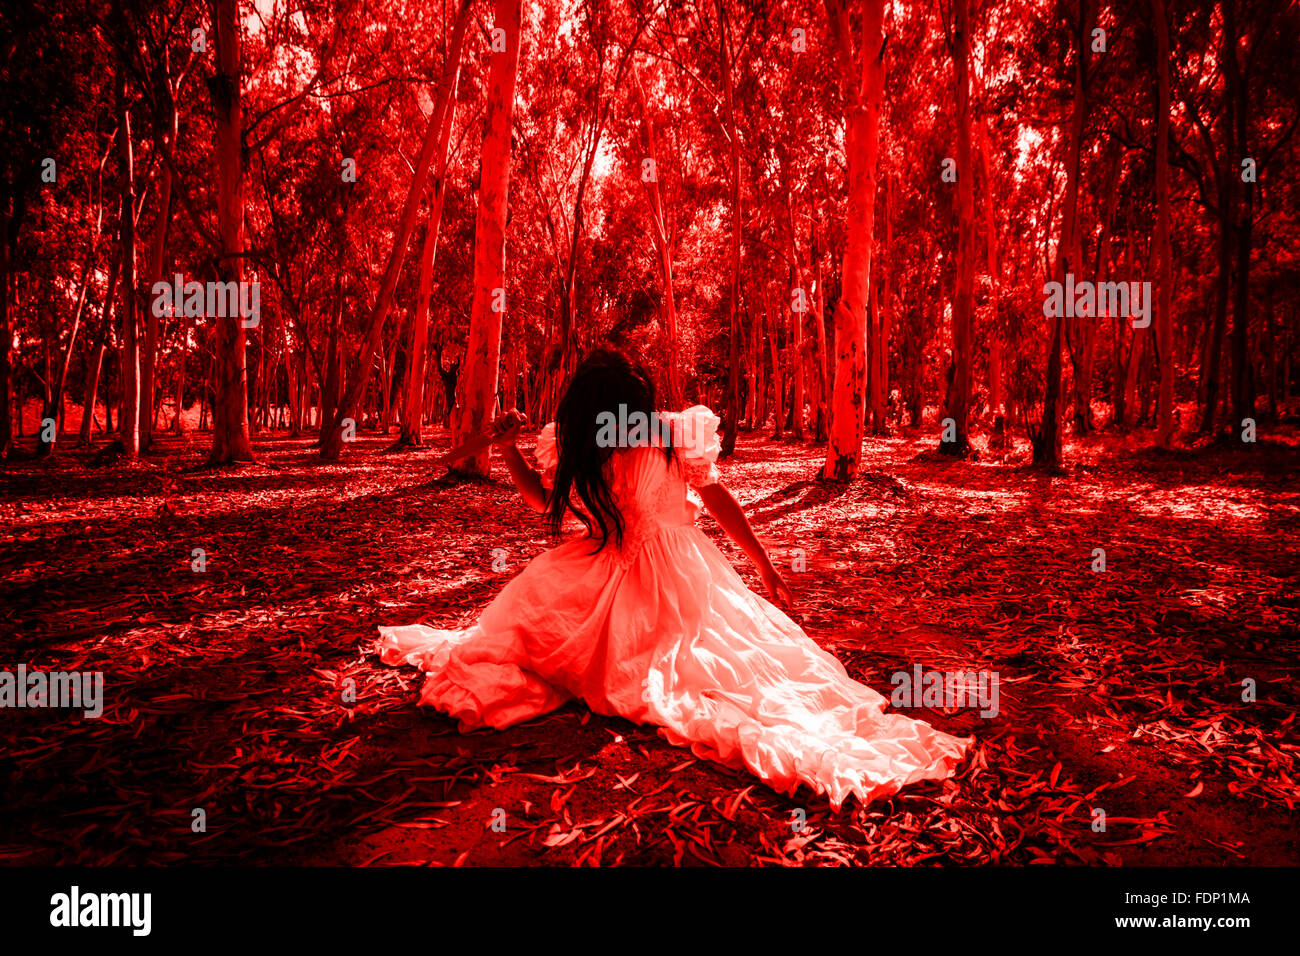 Scary Woman in the Wood - Stock Image